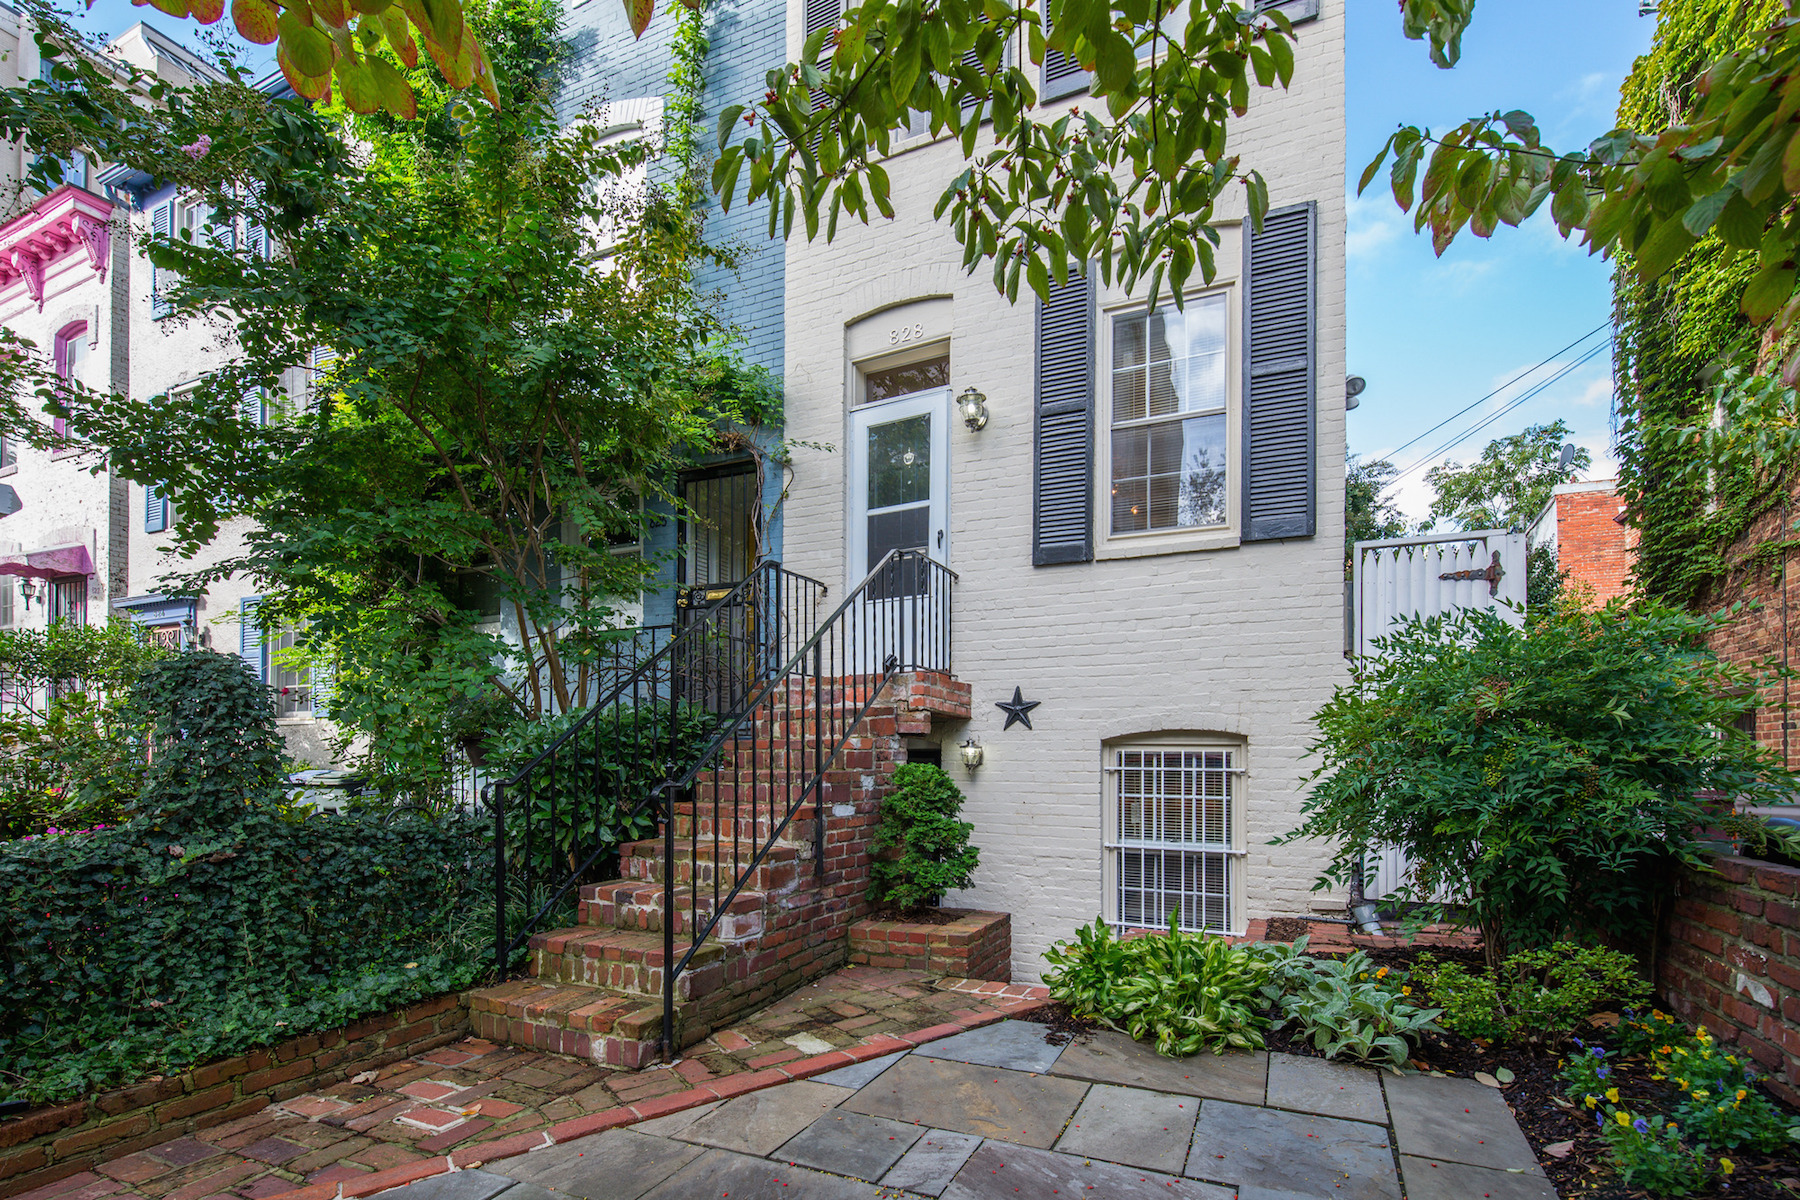 Townhouse for Sale at 828 25th Street Nw NW, Washington 828 NW 25th Street Nw Washington, District Of Columbia 20037 United States